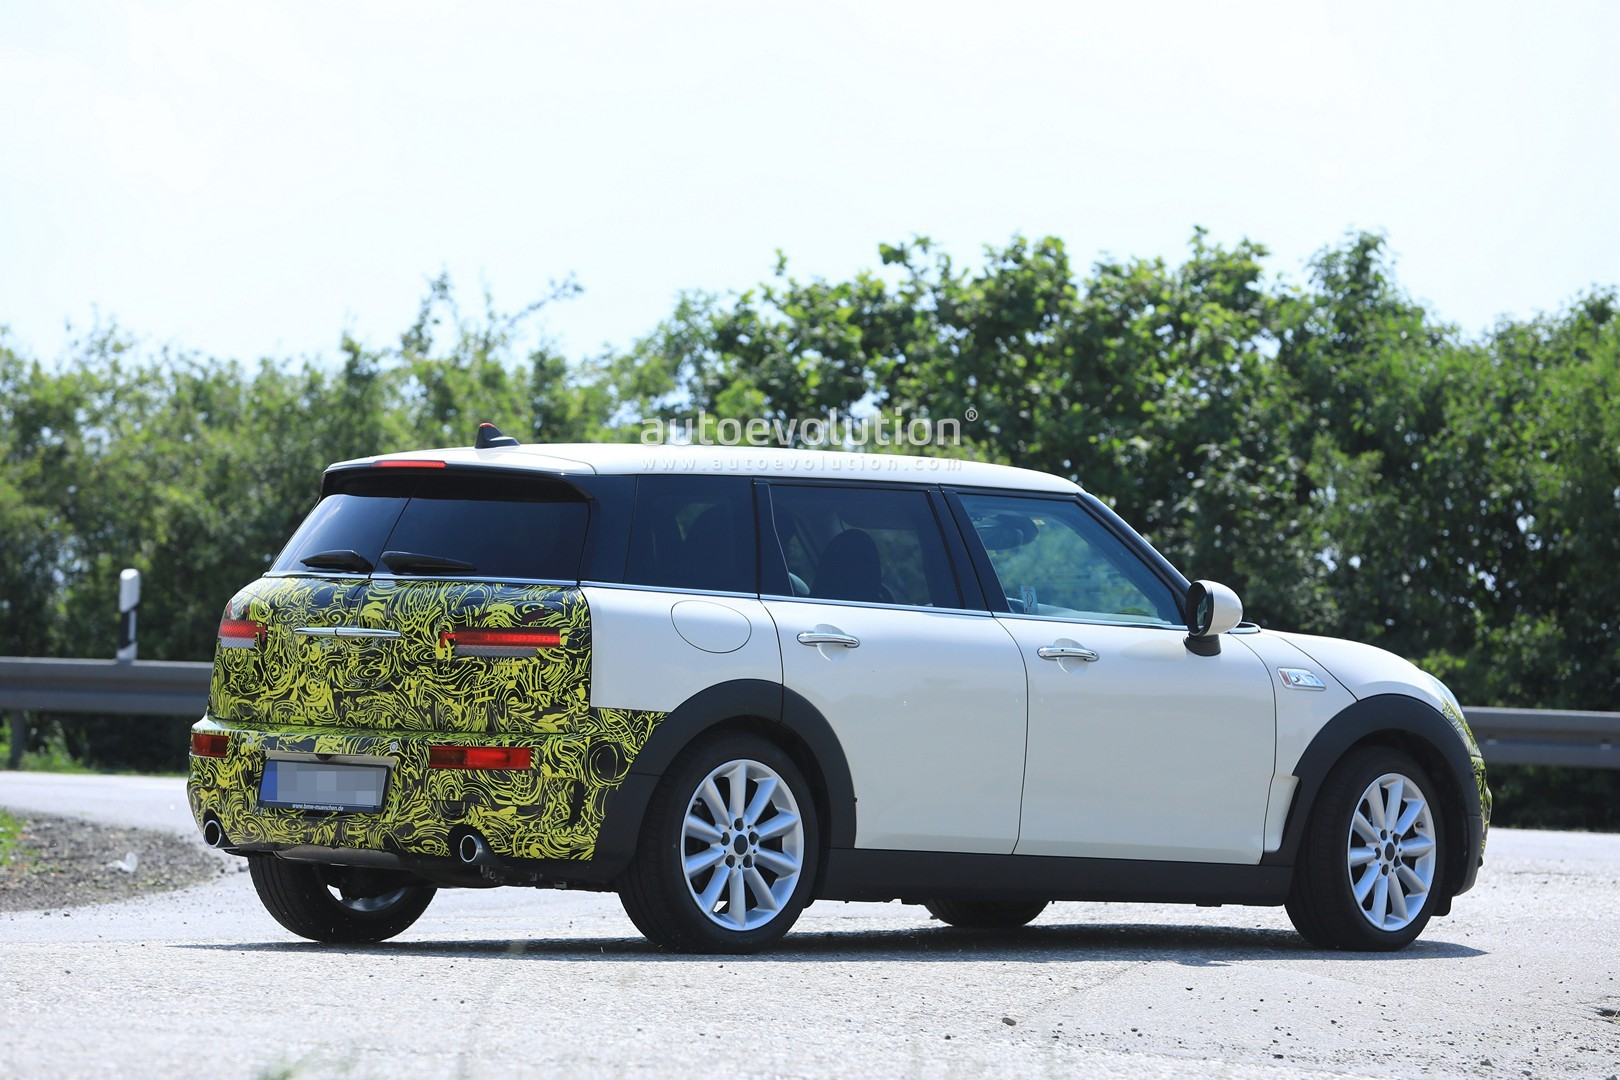 2019 Mini Clubman Facelift Caught For The First Time